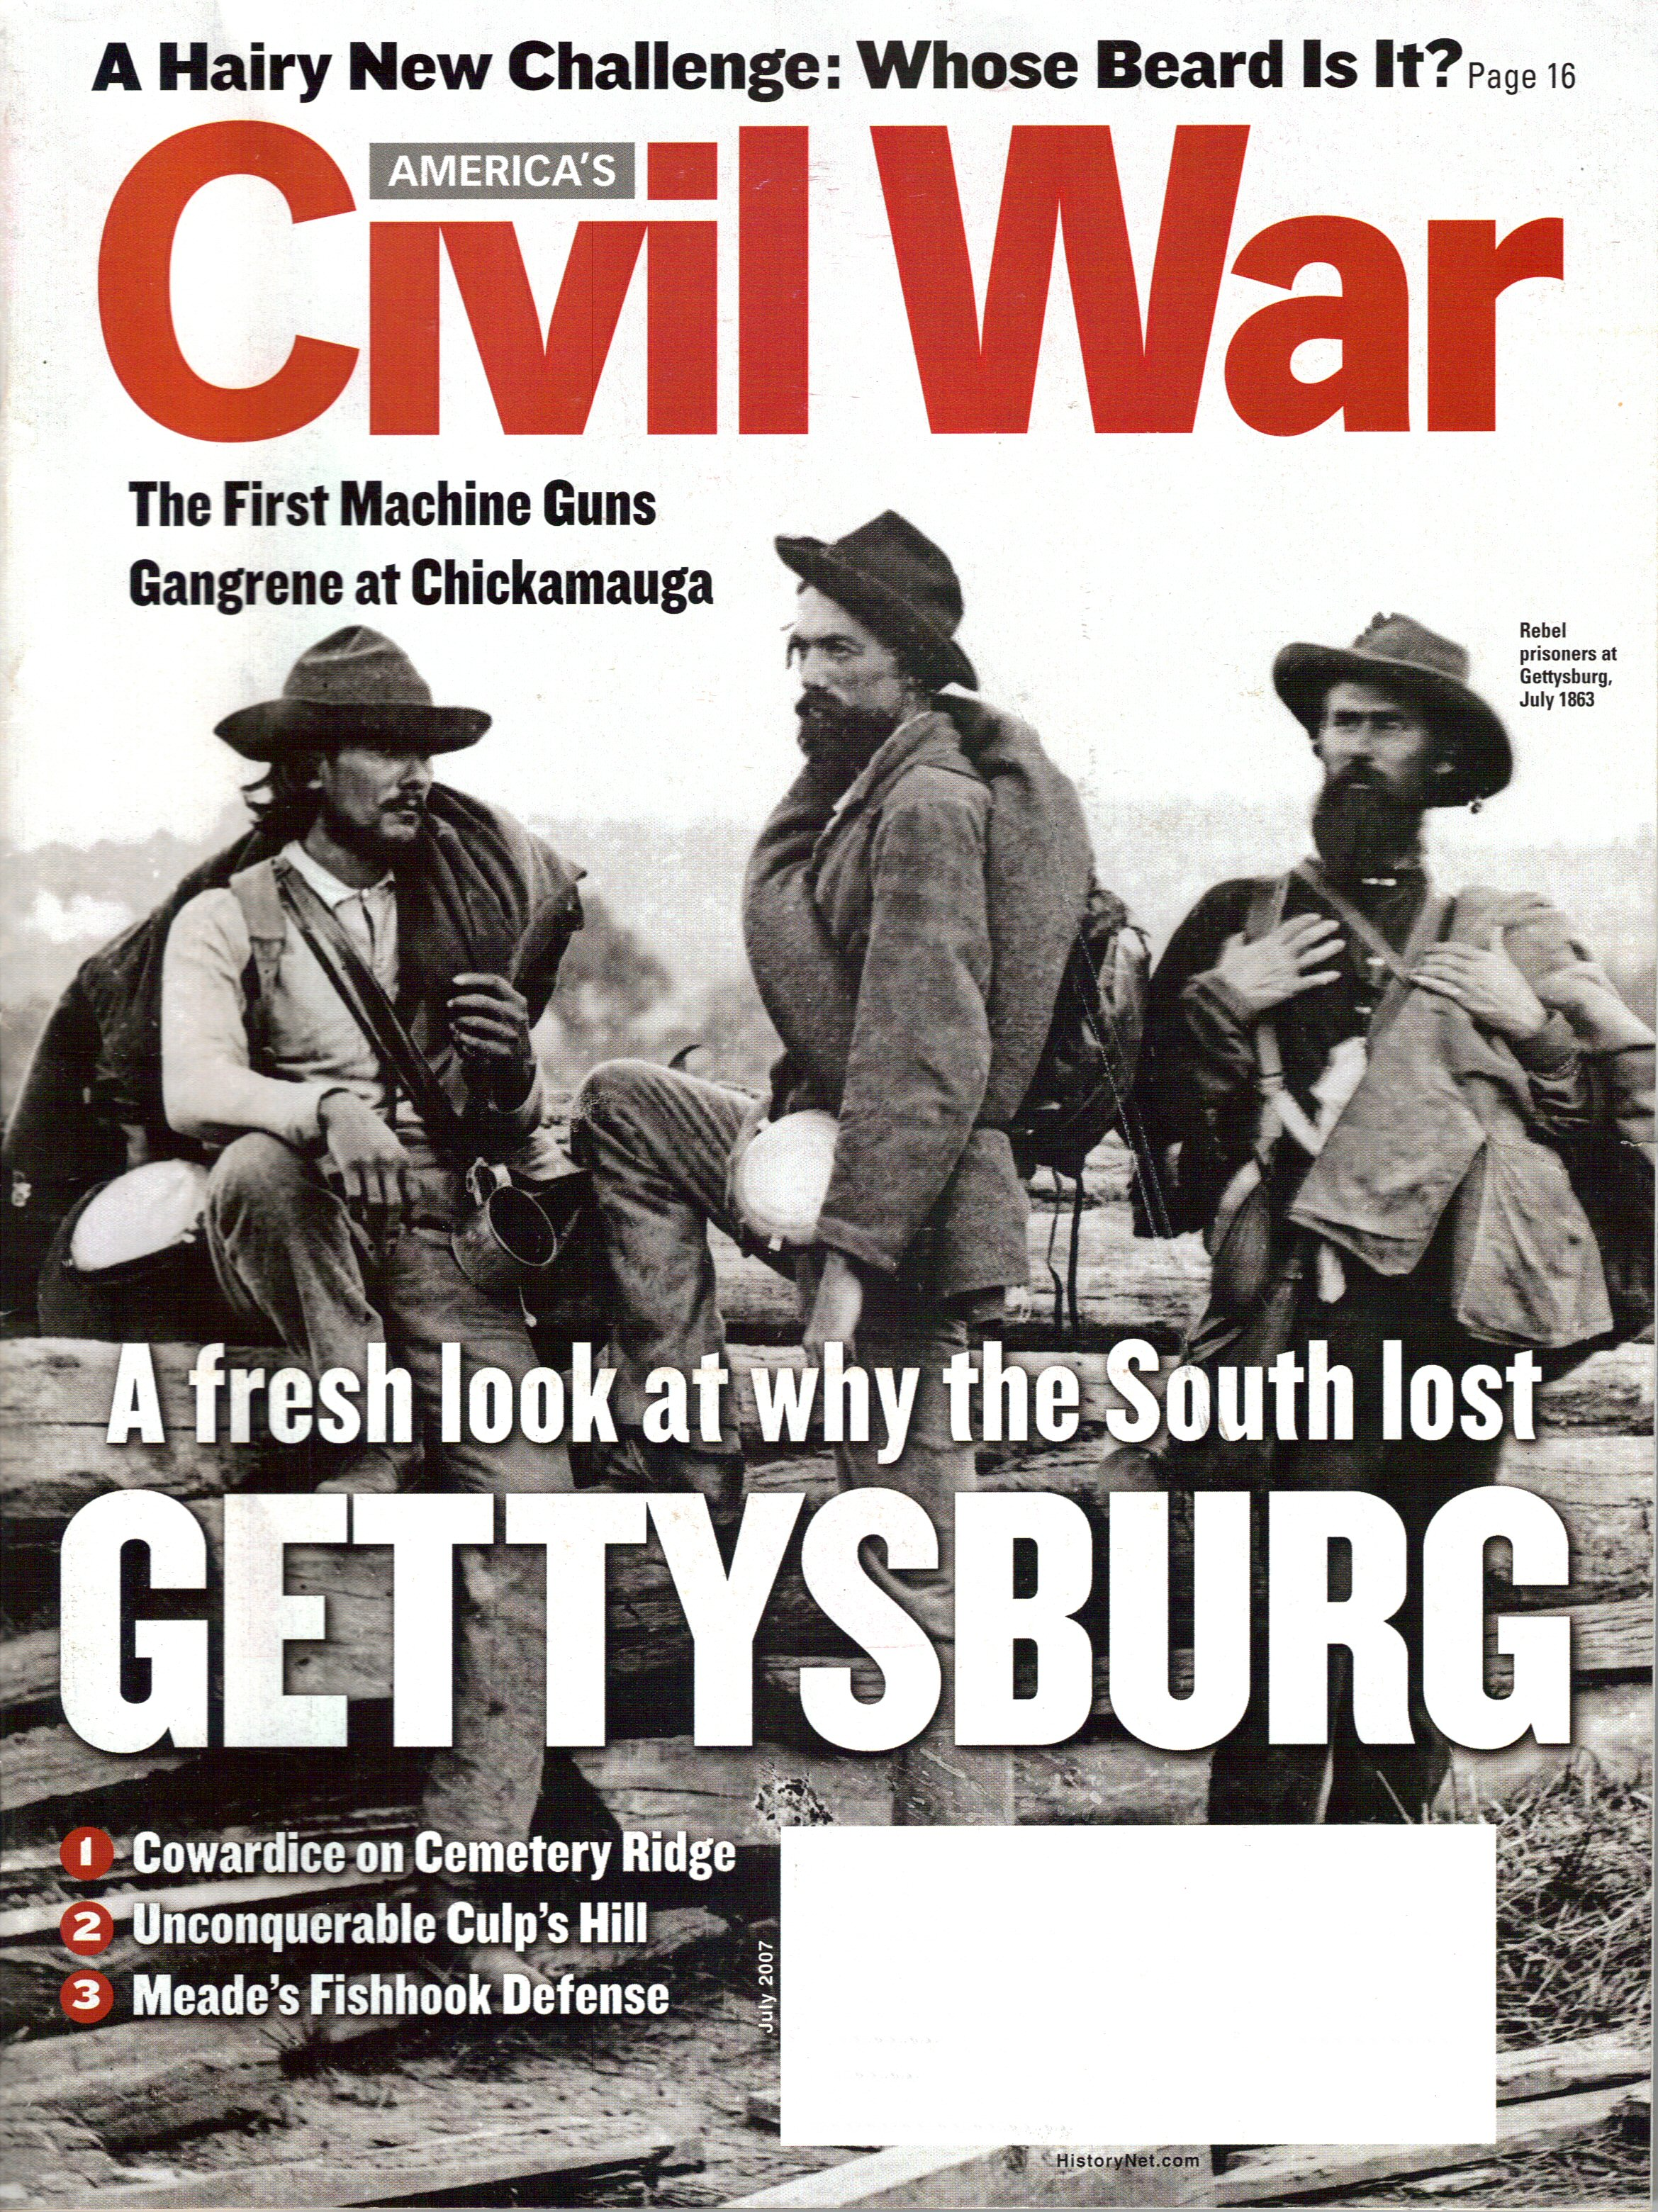 Americas Civil War, Volume 20, Number 3 (July 2007)